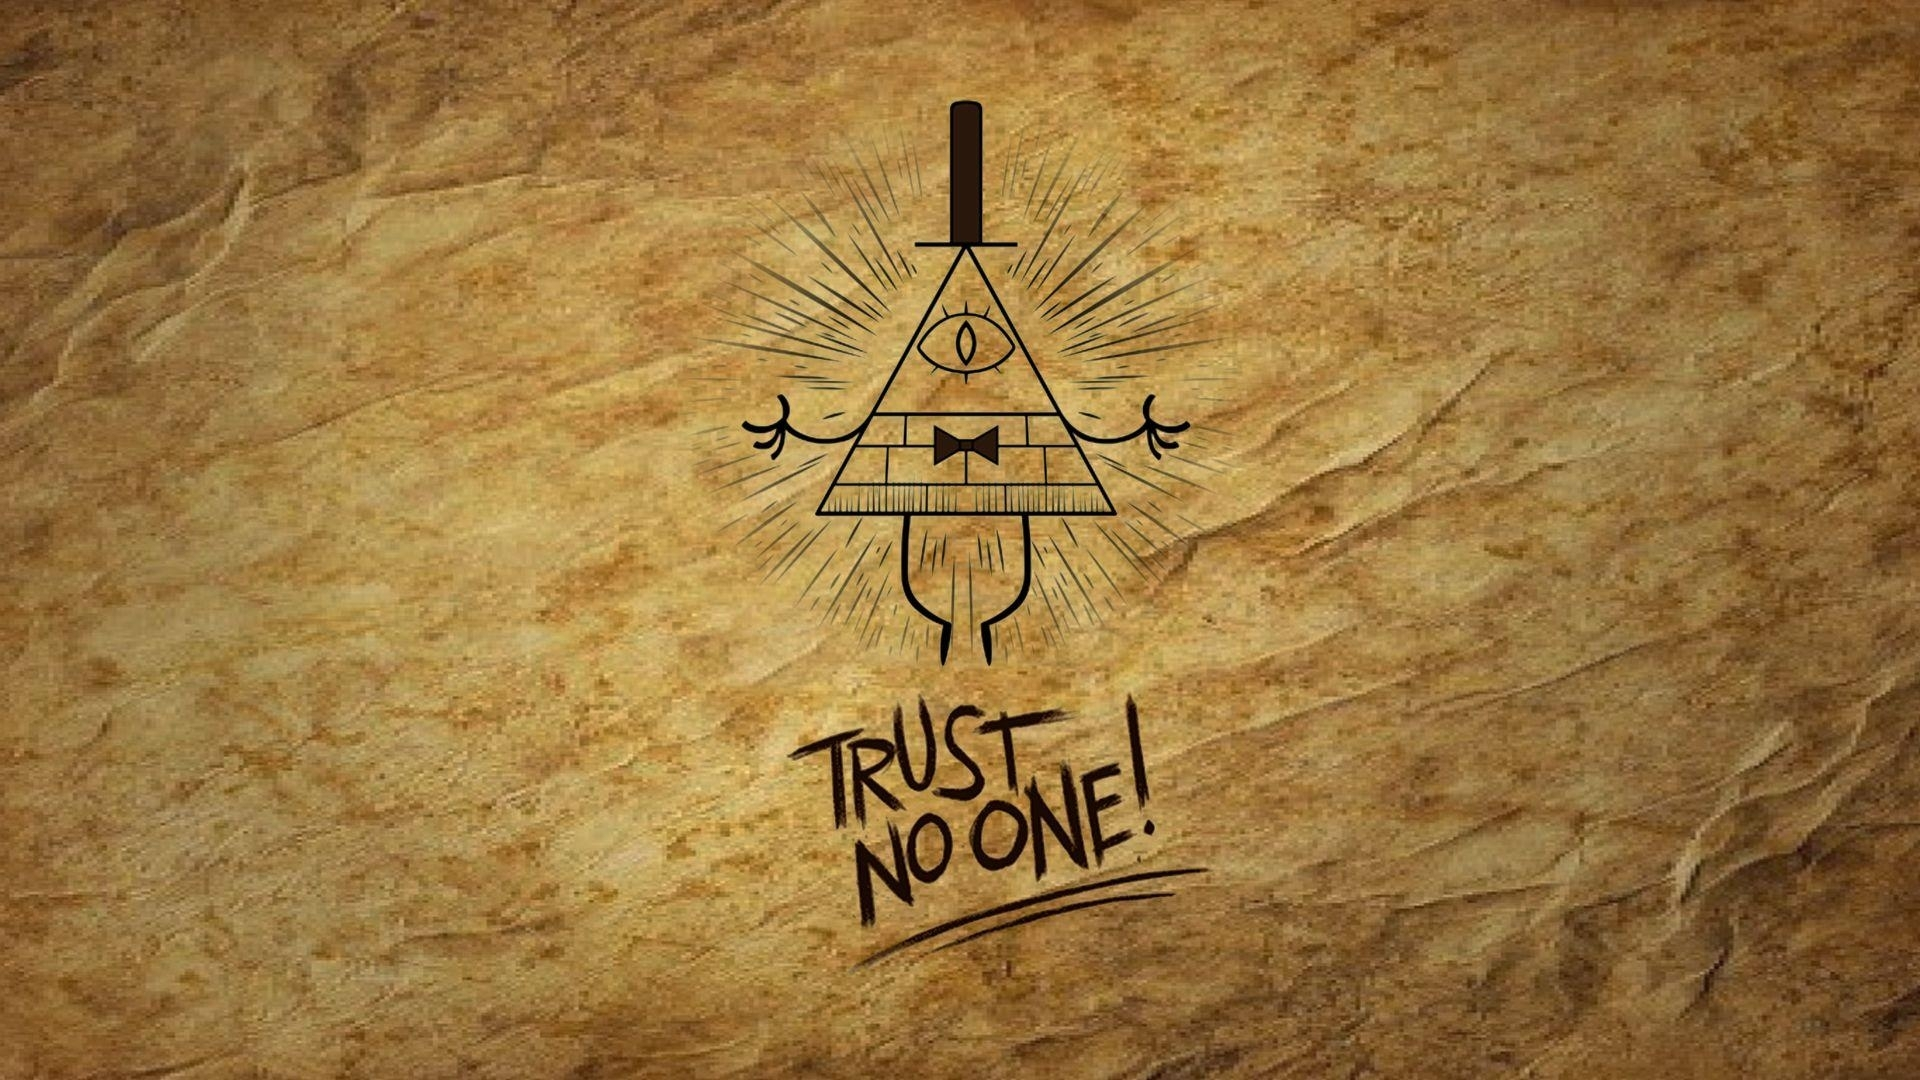 10 Top Gravity Falls Hd Wallpaper FULL HD 1920×1080 For PC Background